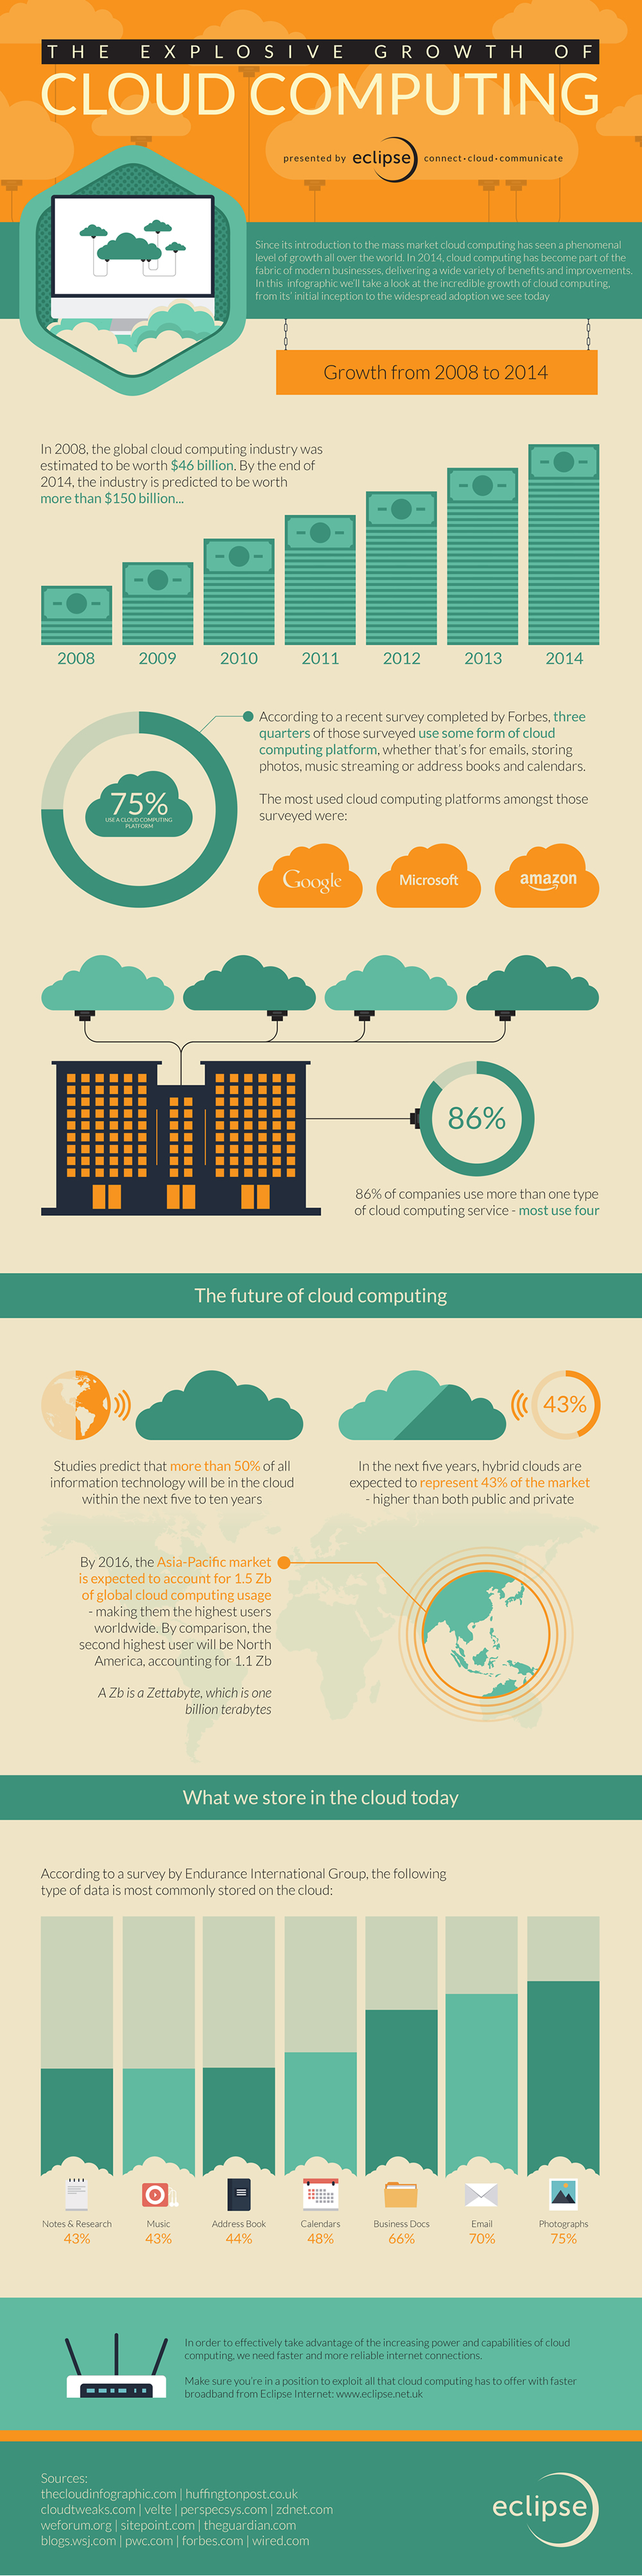 cloud-computing-infographic-thumb